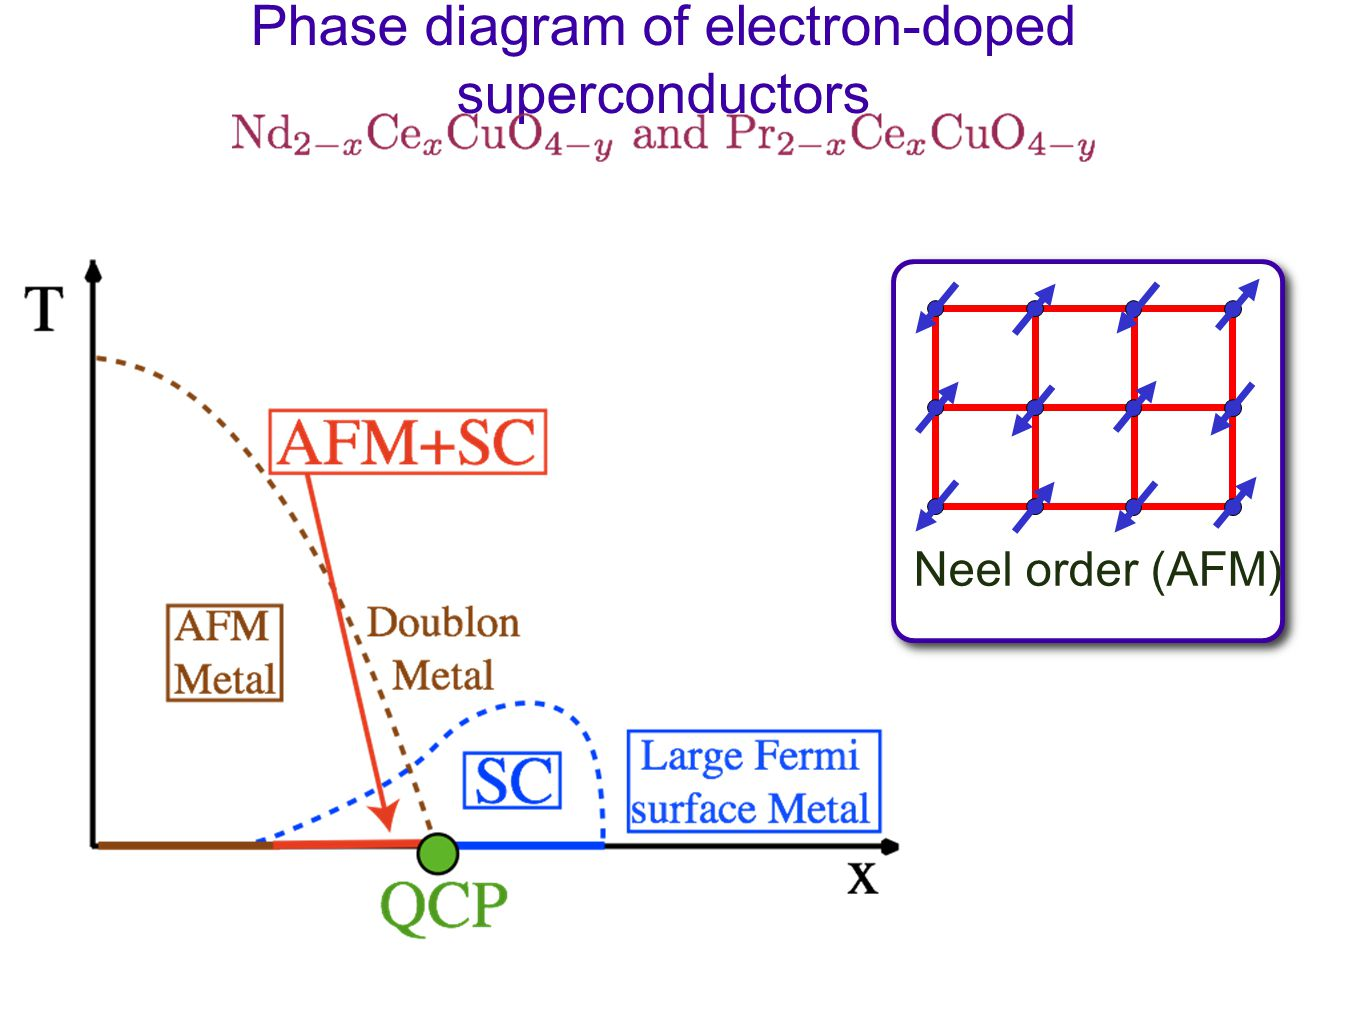 Phase diagram of electron-doped superconductors Neel order (AFM)